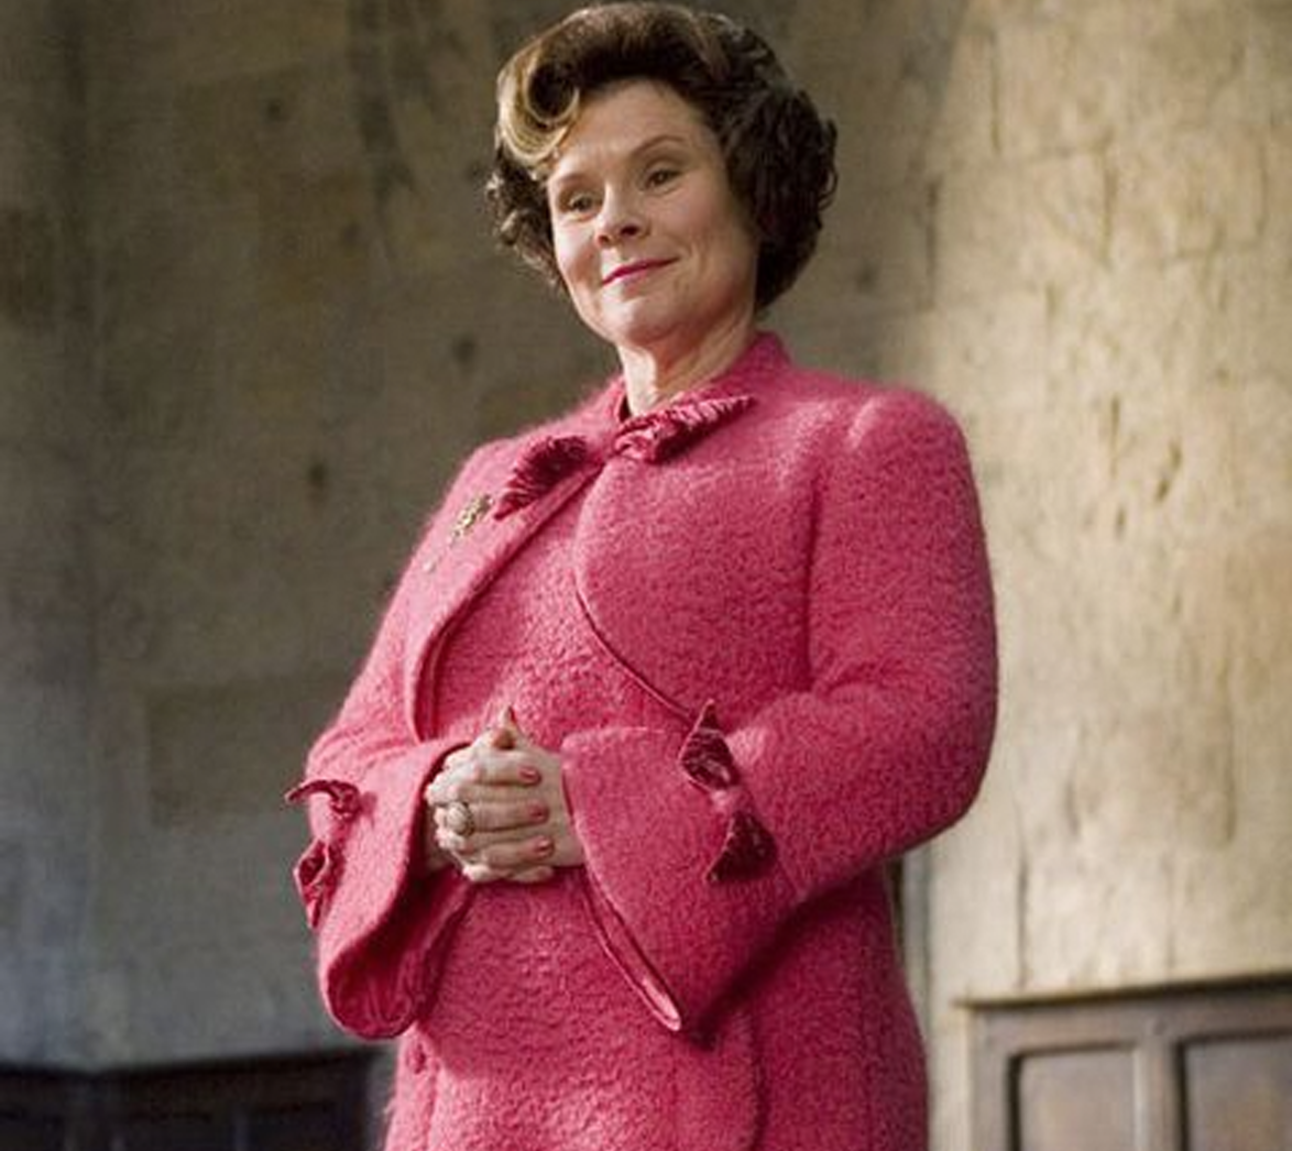 Dolores Umbridge from Harry Potter